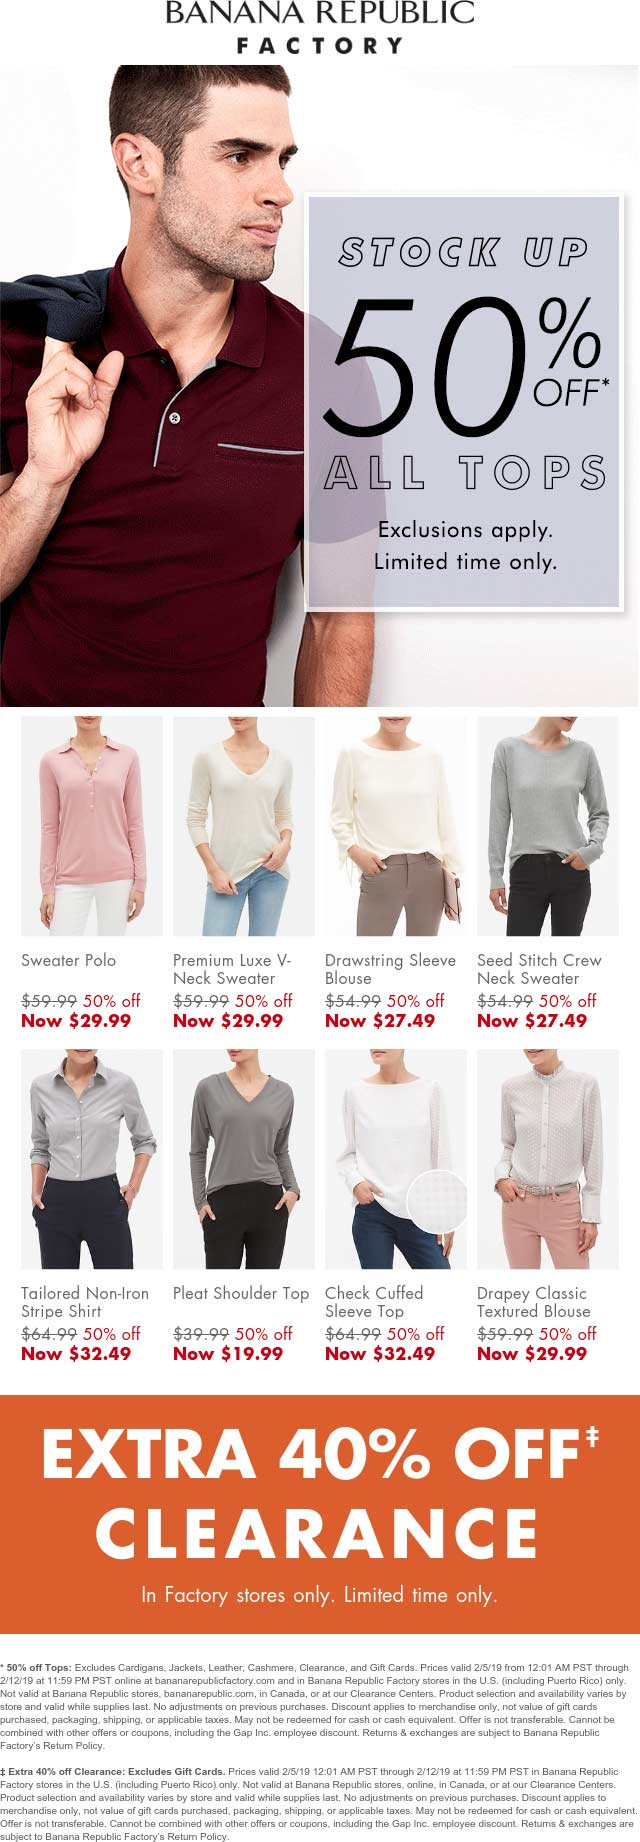 Banana Republic Factory Coupon March 2019 50% off tops & 40% off clearance at Banana Republic Factory, ditto online